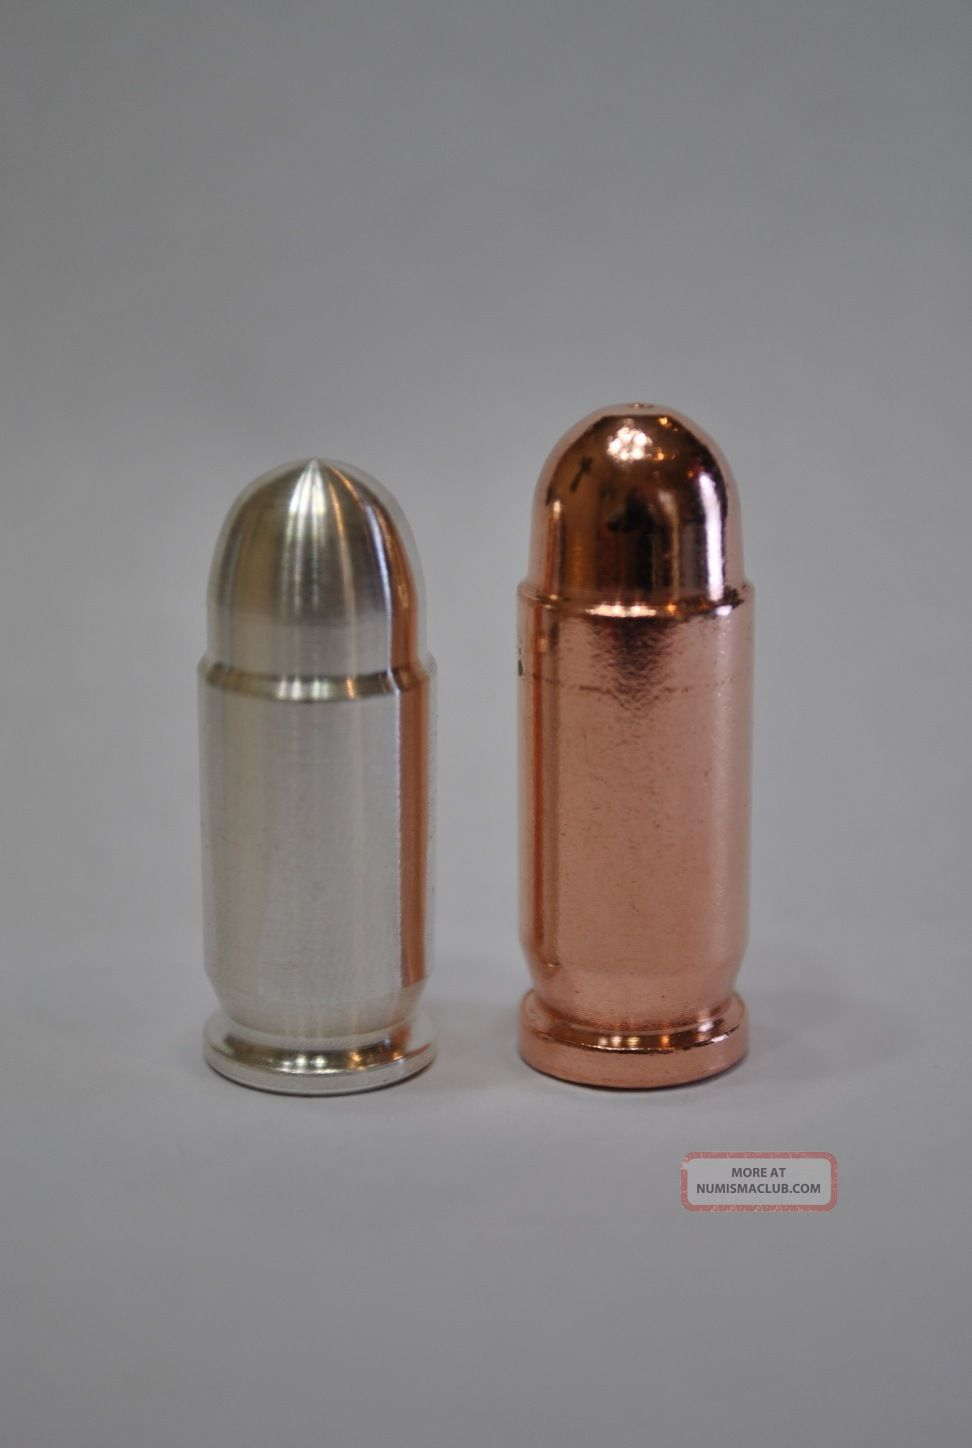 1oz Silver Bullet Bullion Amp 1 Oz Copper Bullet